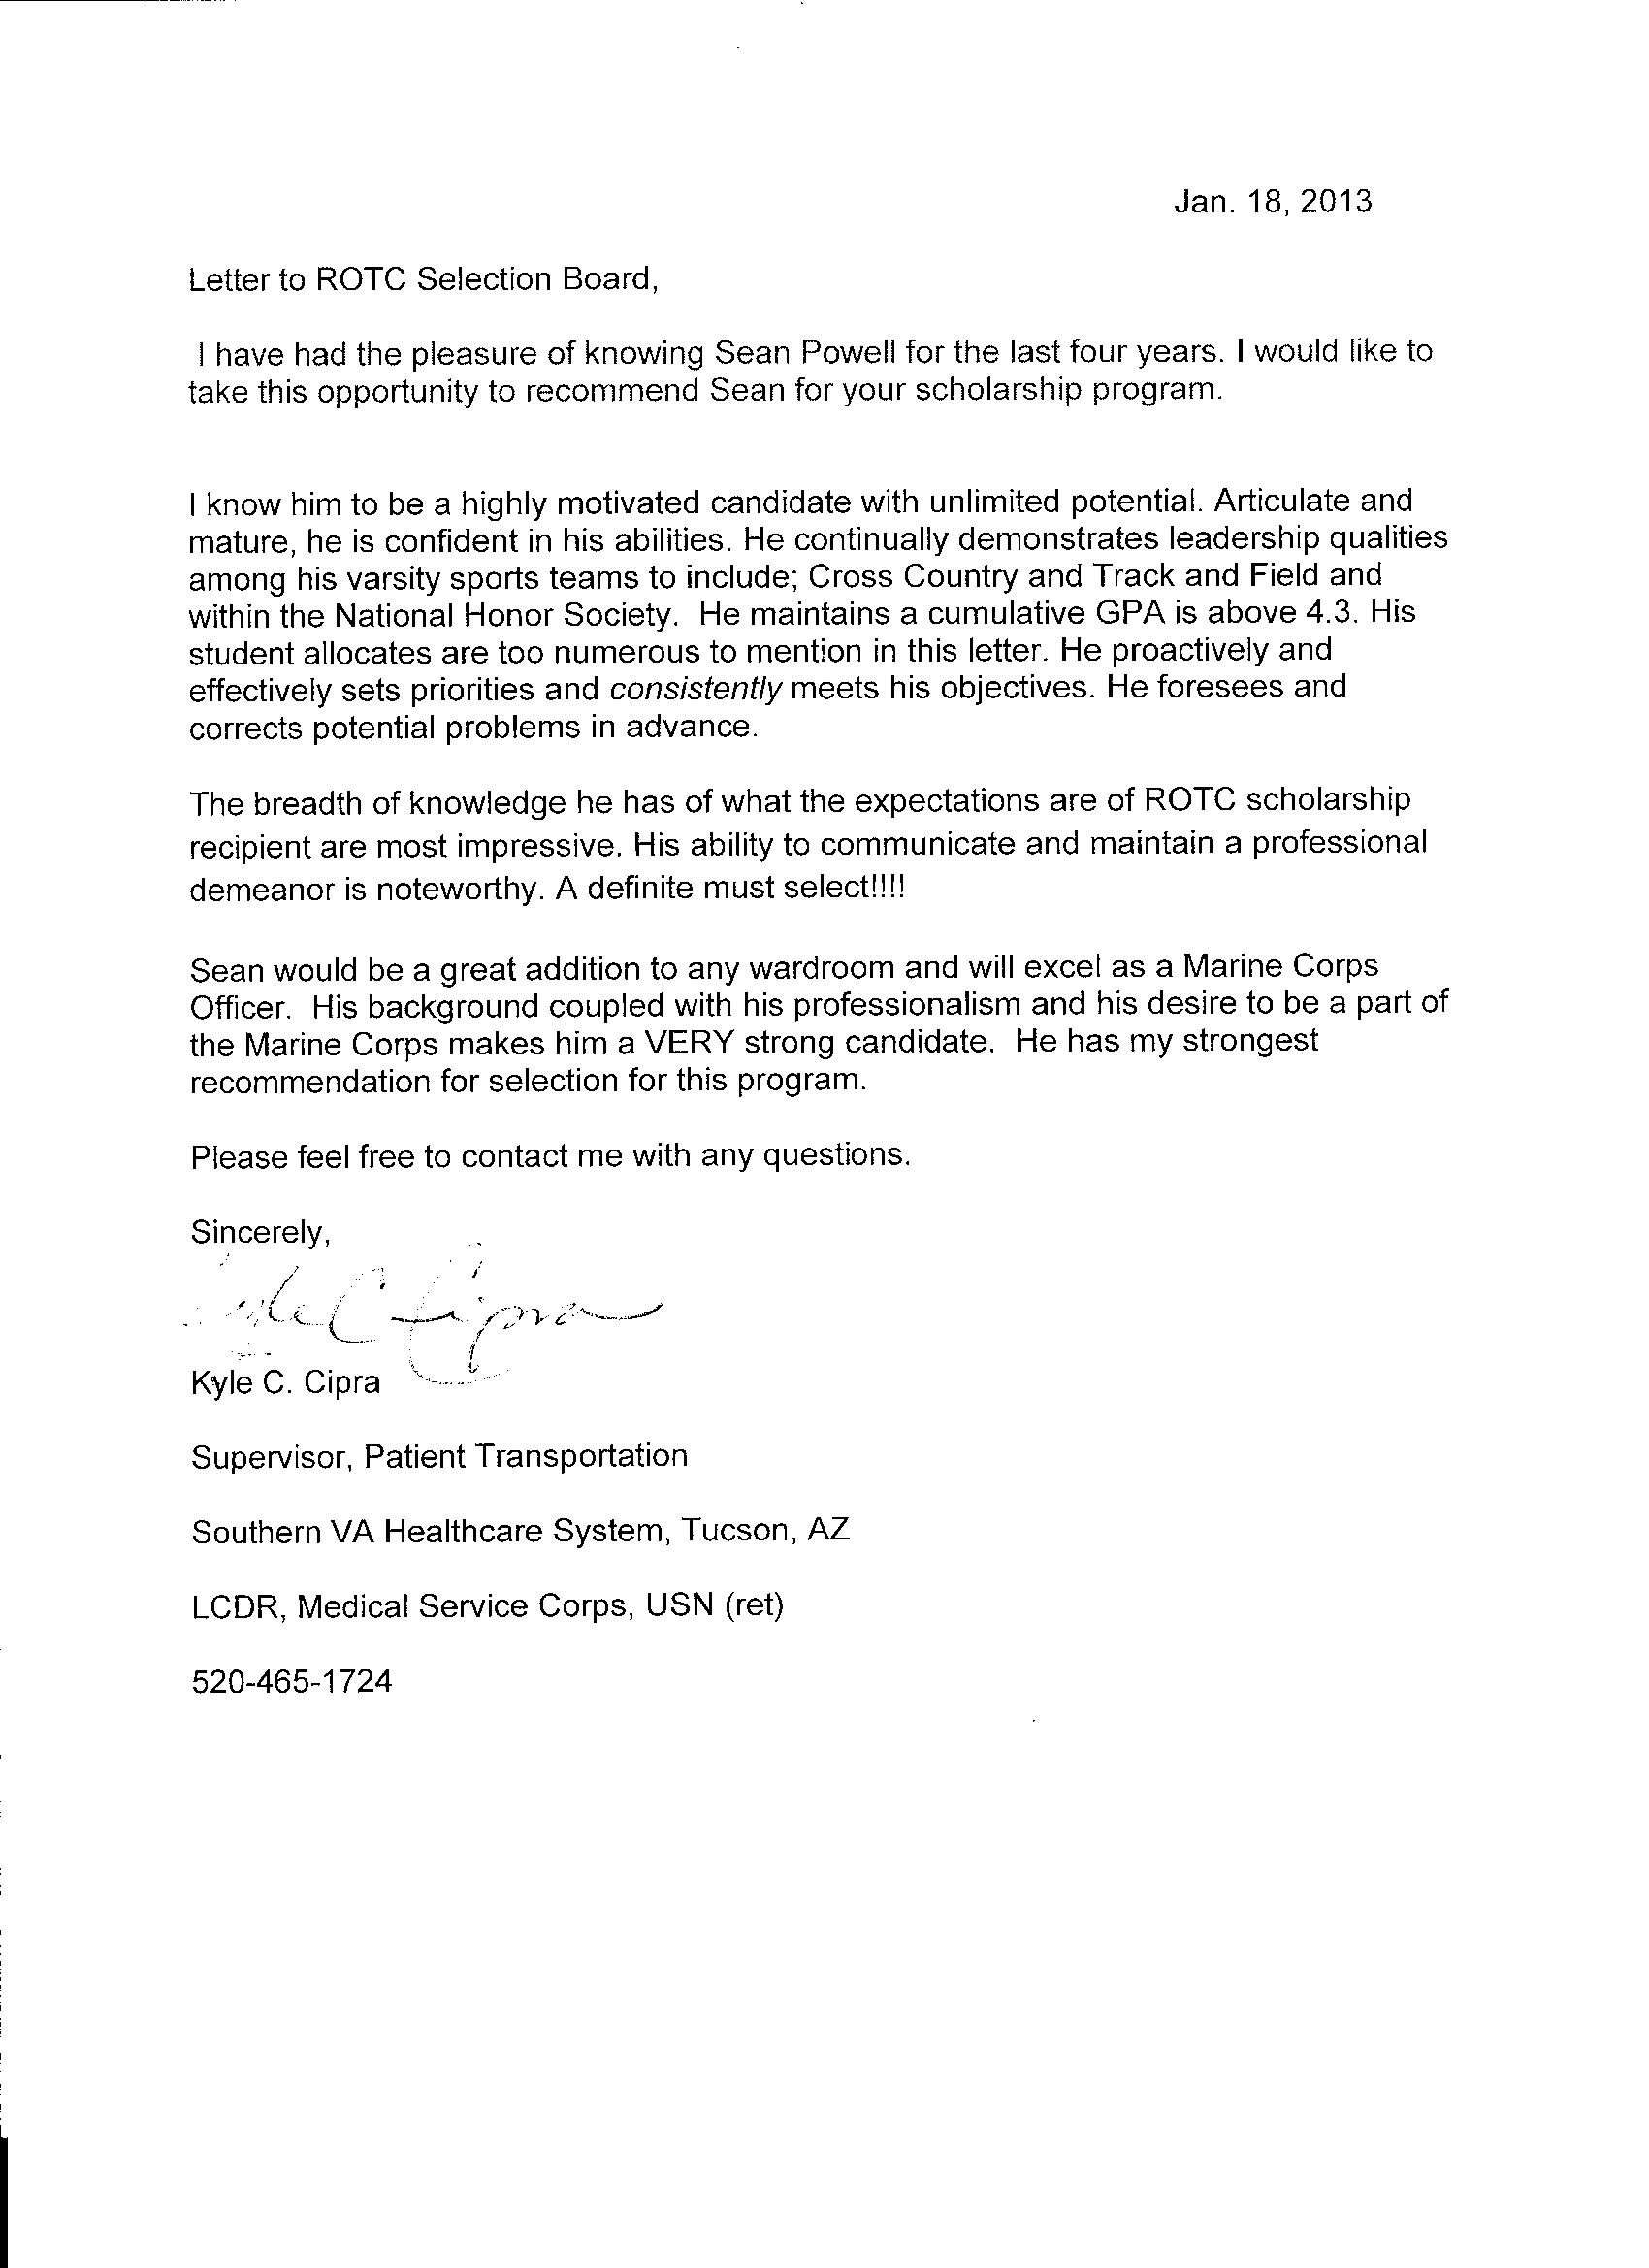 letter of rec for sean powell 1